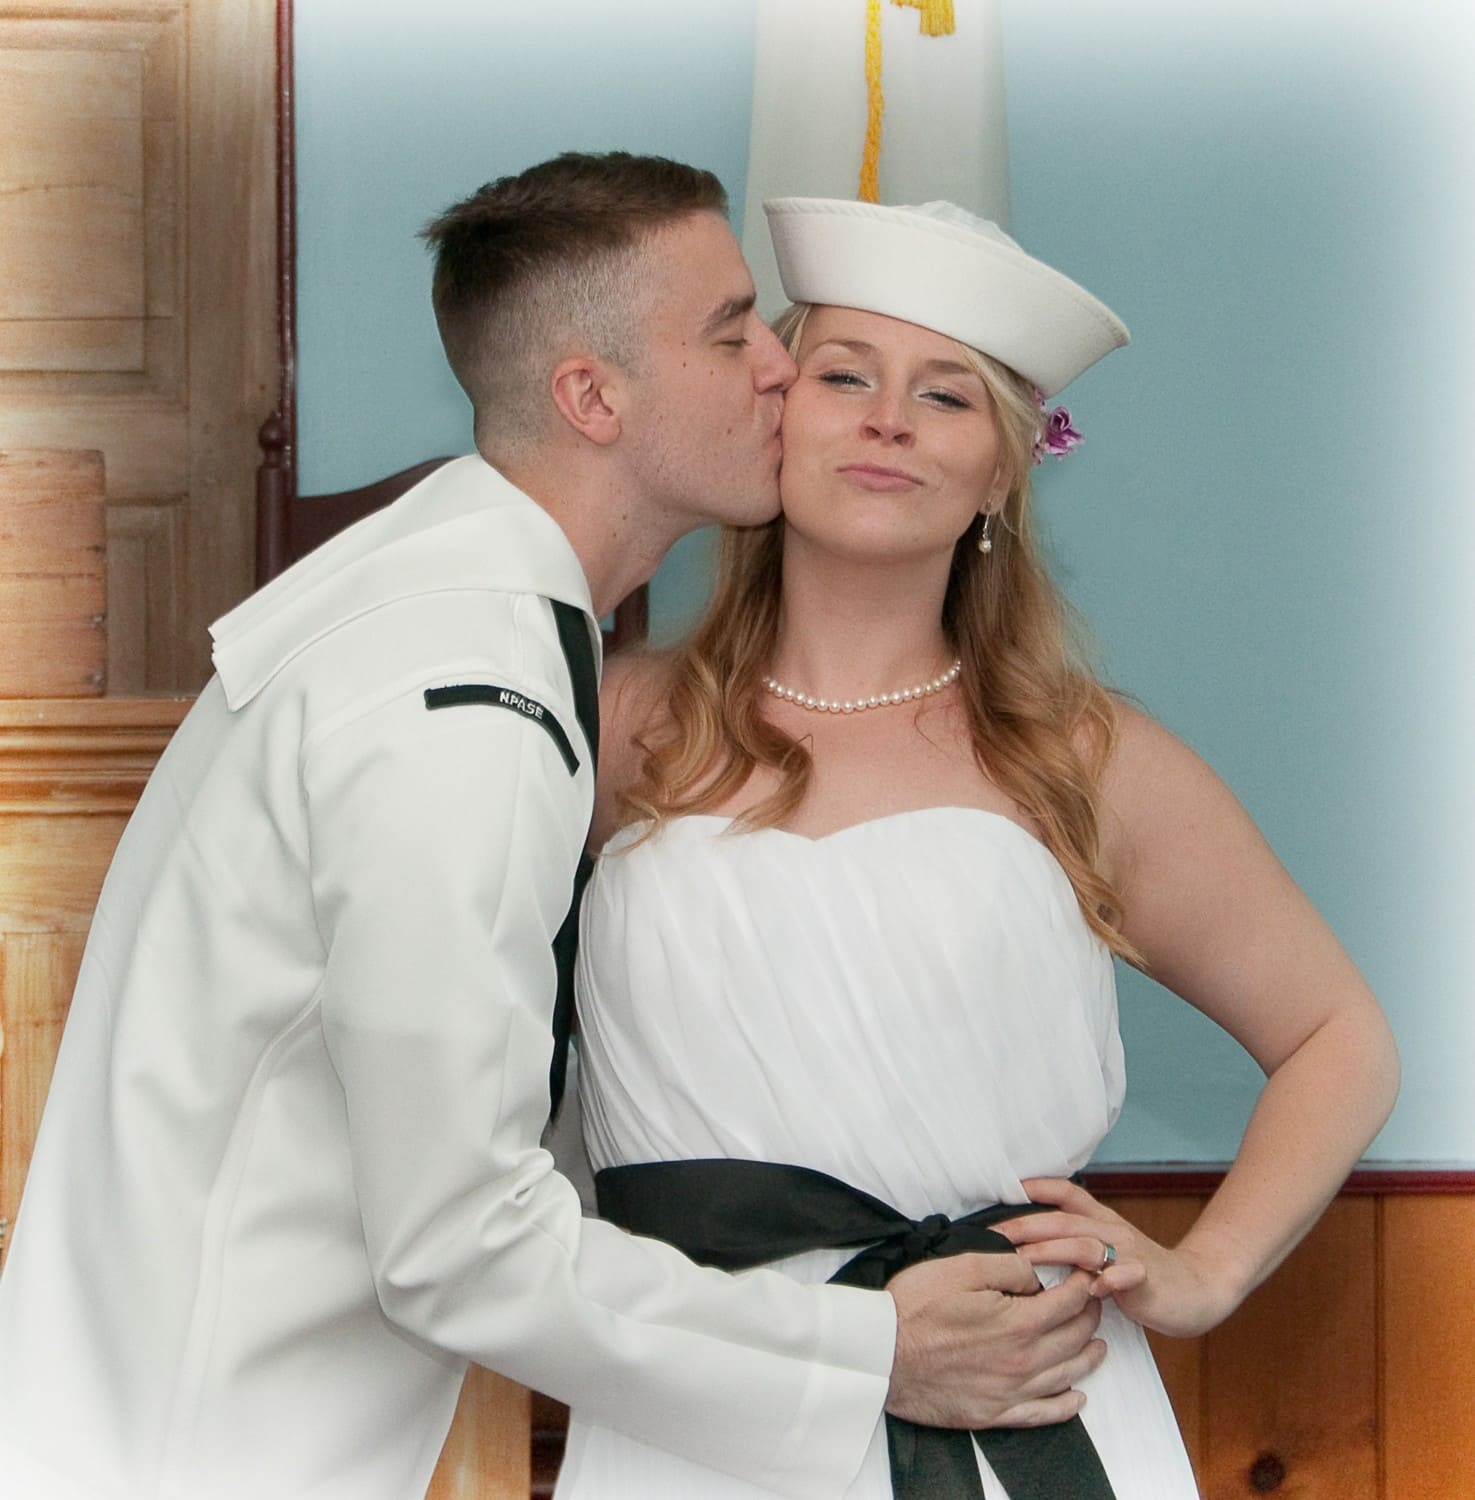 sailor wedding